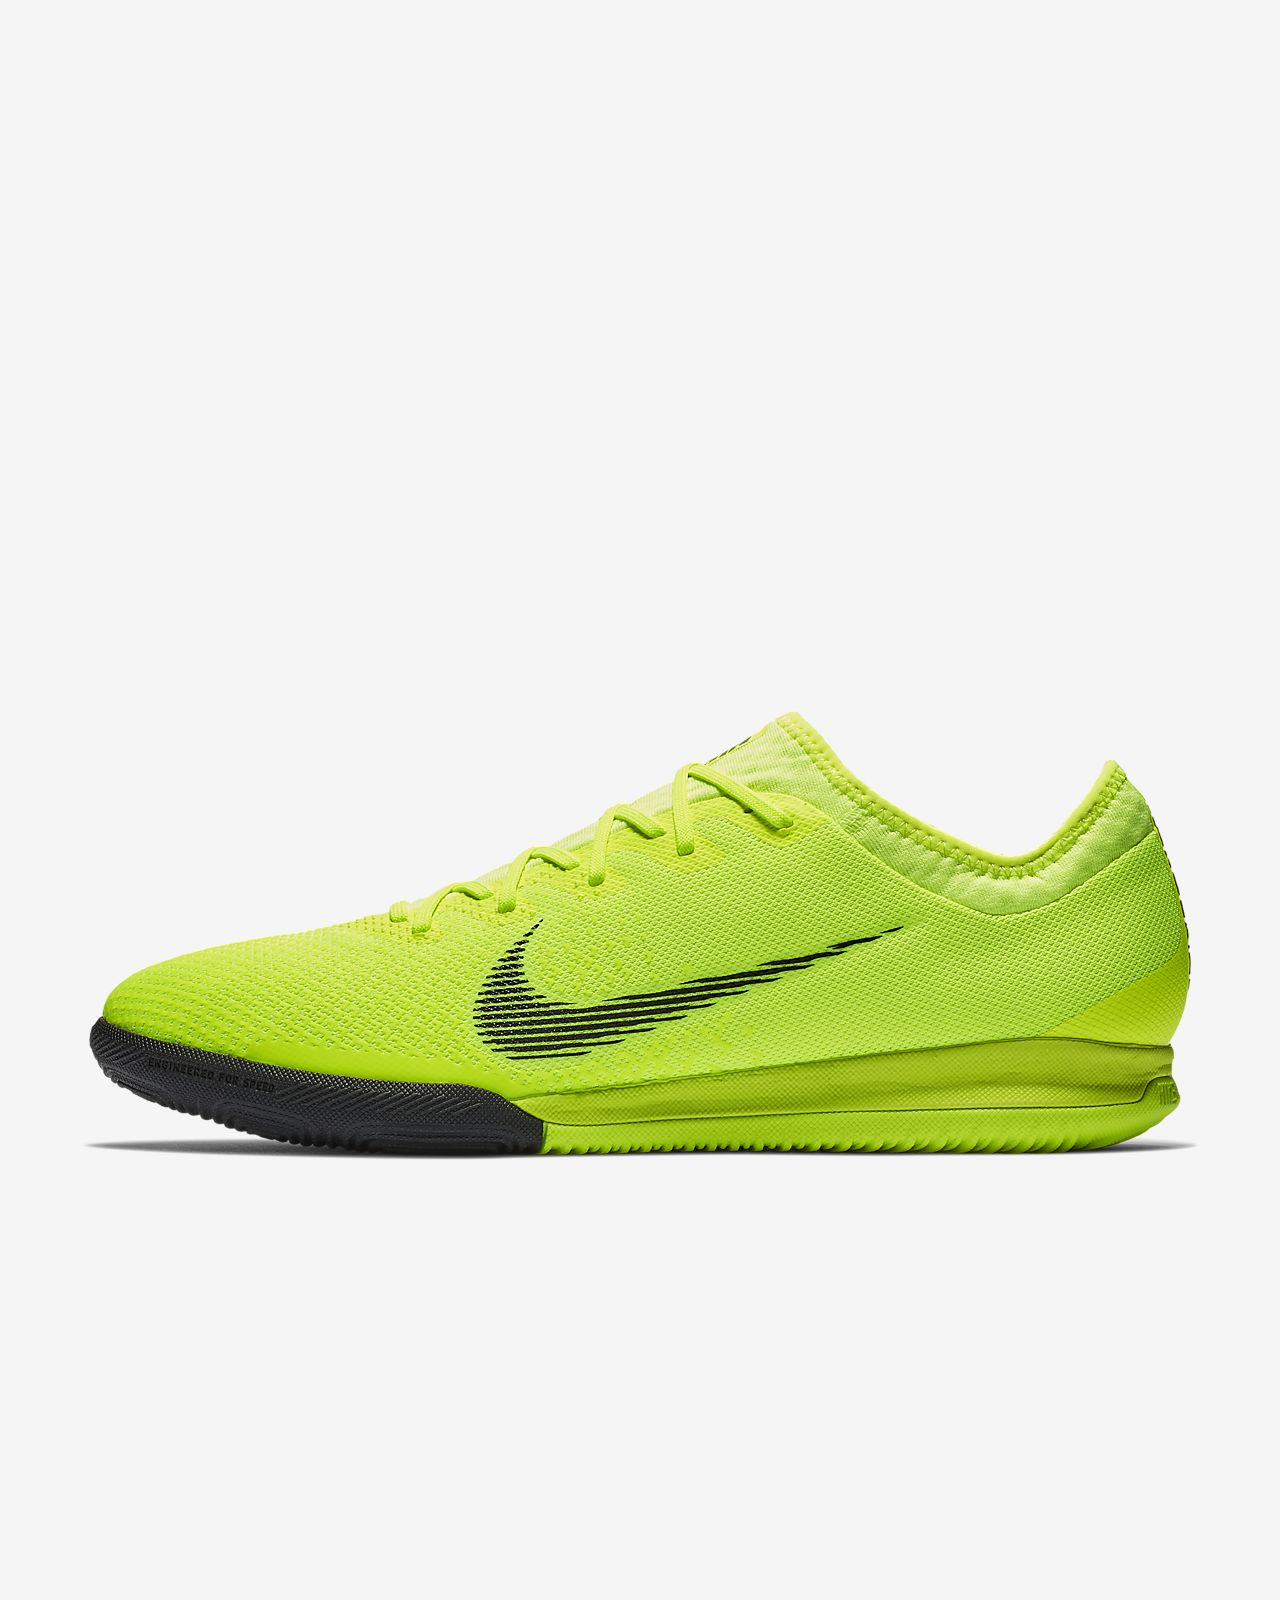 hot sales c3a28 c9f5f ... Nike mercurialx vapor xii pro indoorcourt football shoe. Free shipping